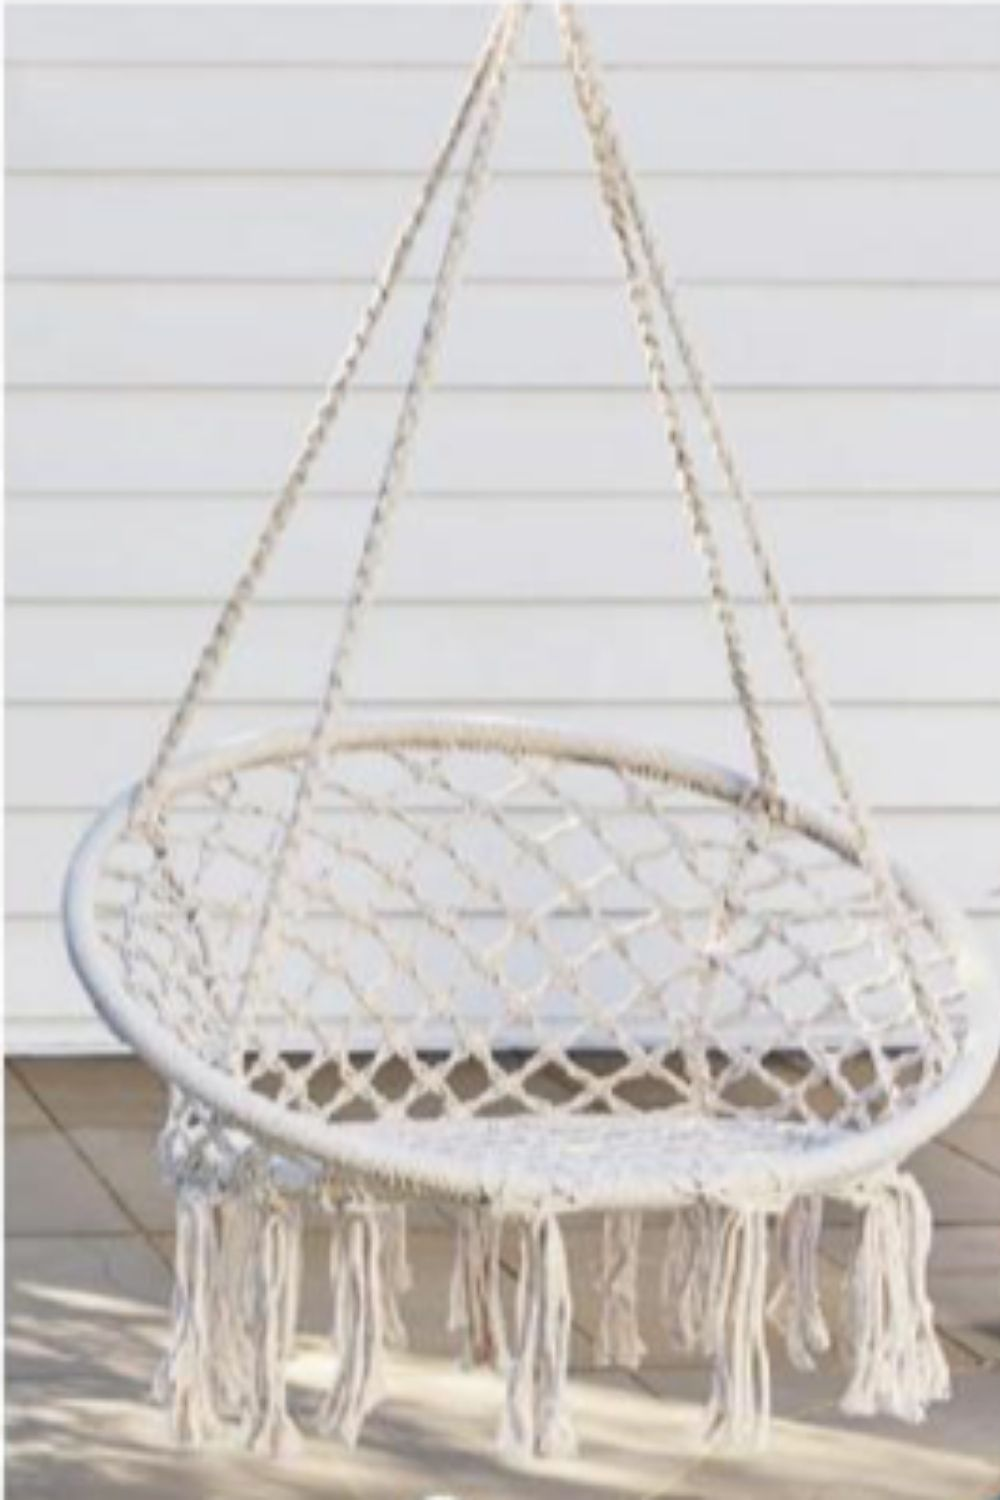 Picture of: The Aldi Australia Hanging Chair That Shoppers Are Going Nuts For New Idea Food